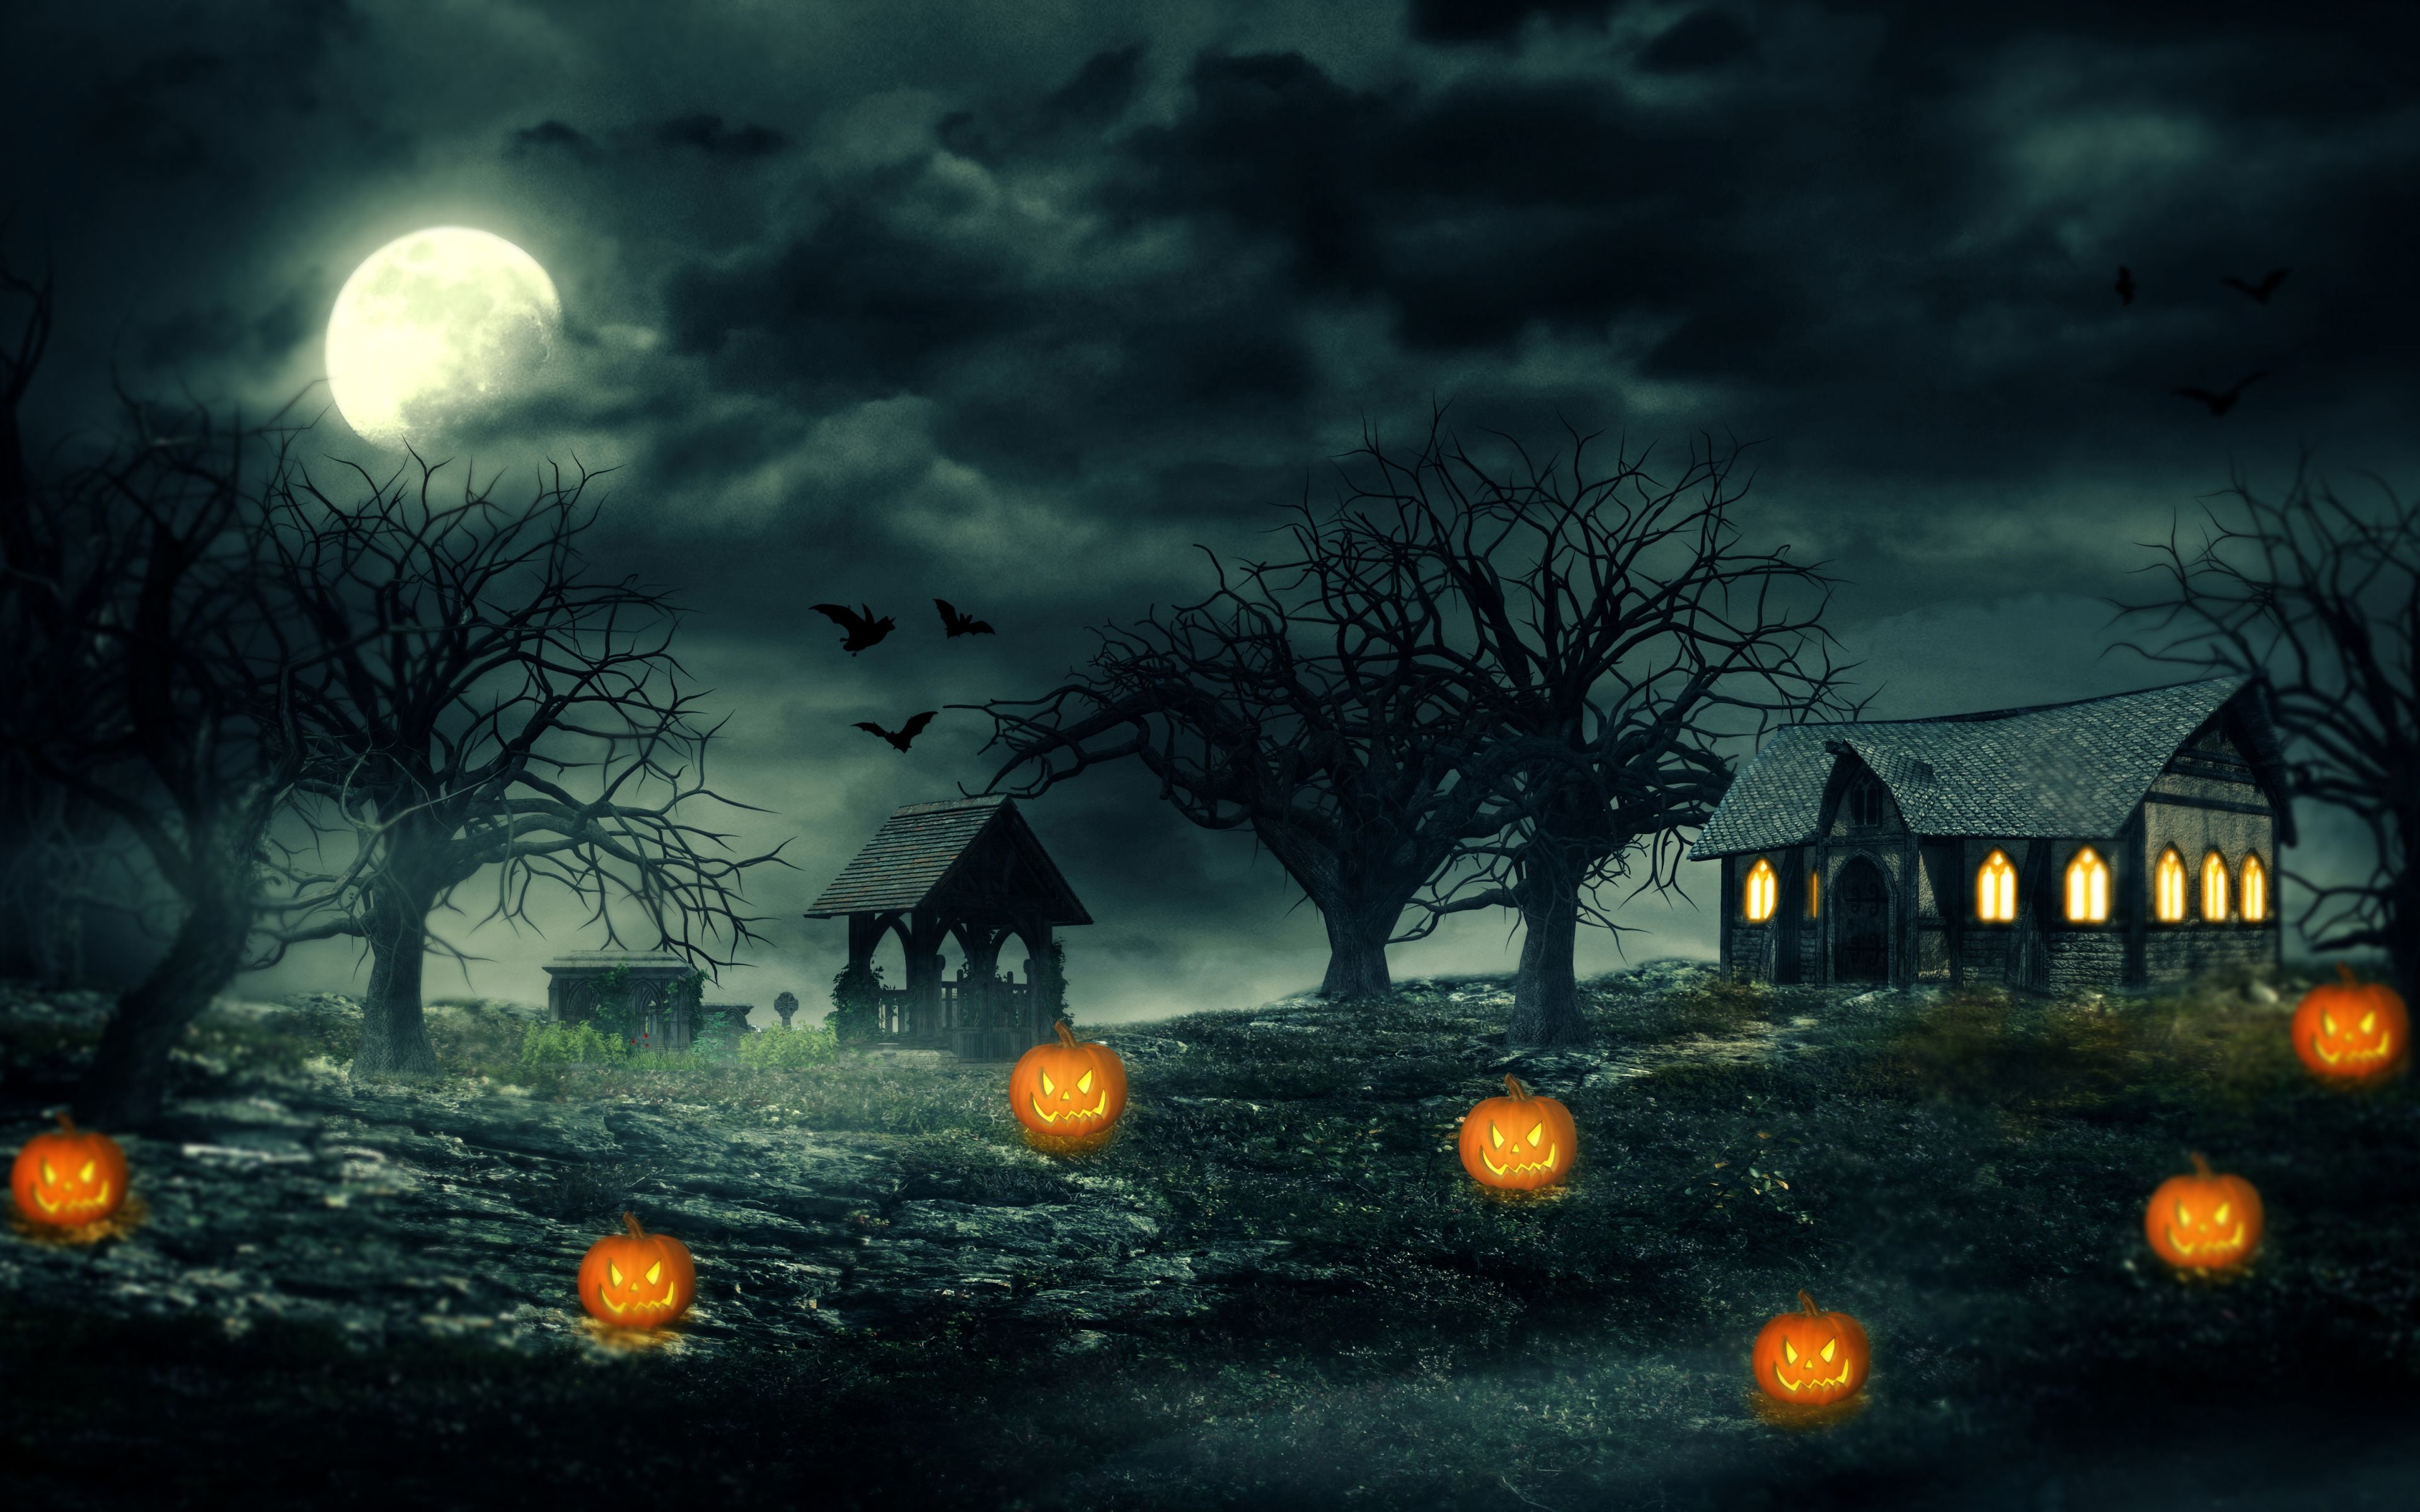 Top 15 halloween scary wallpapers for Windows 8.1/10 | All for ...